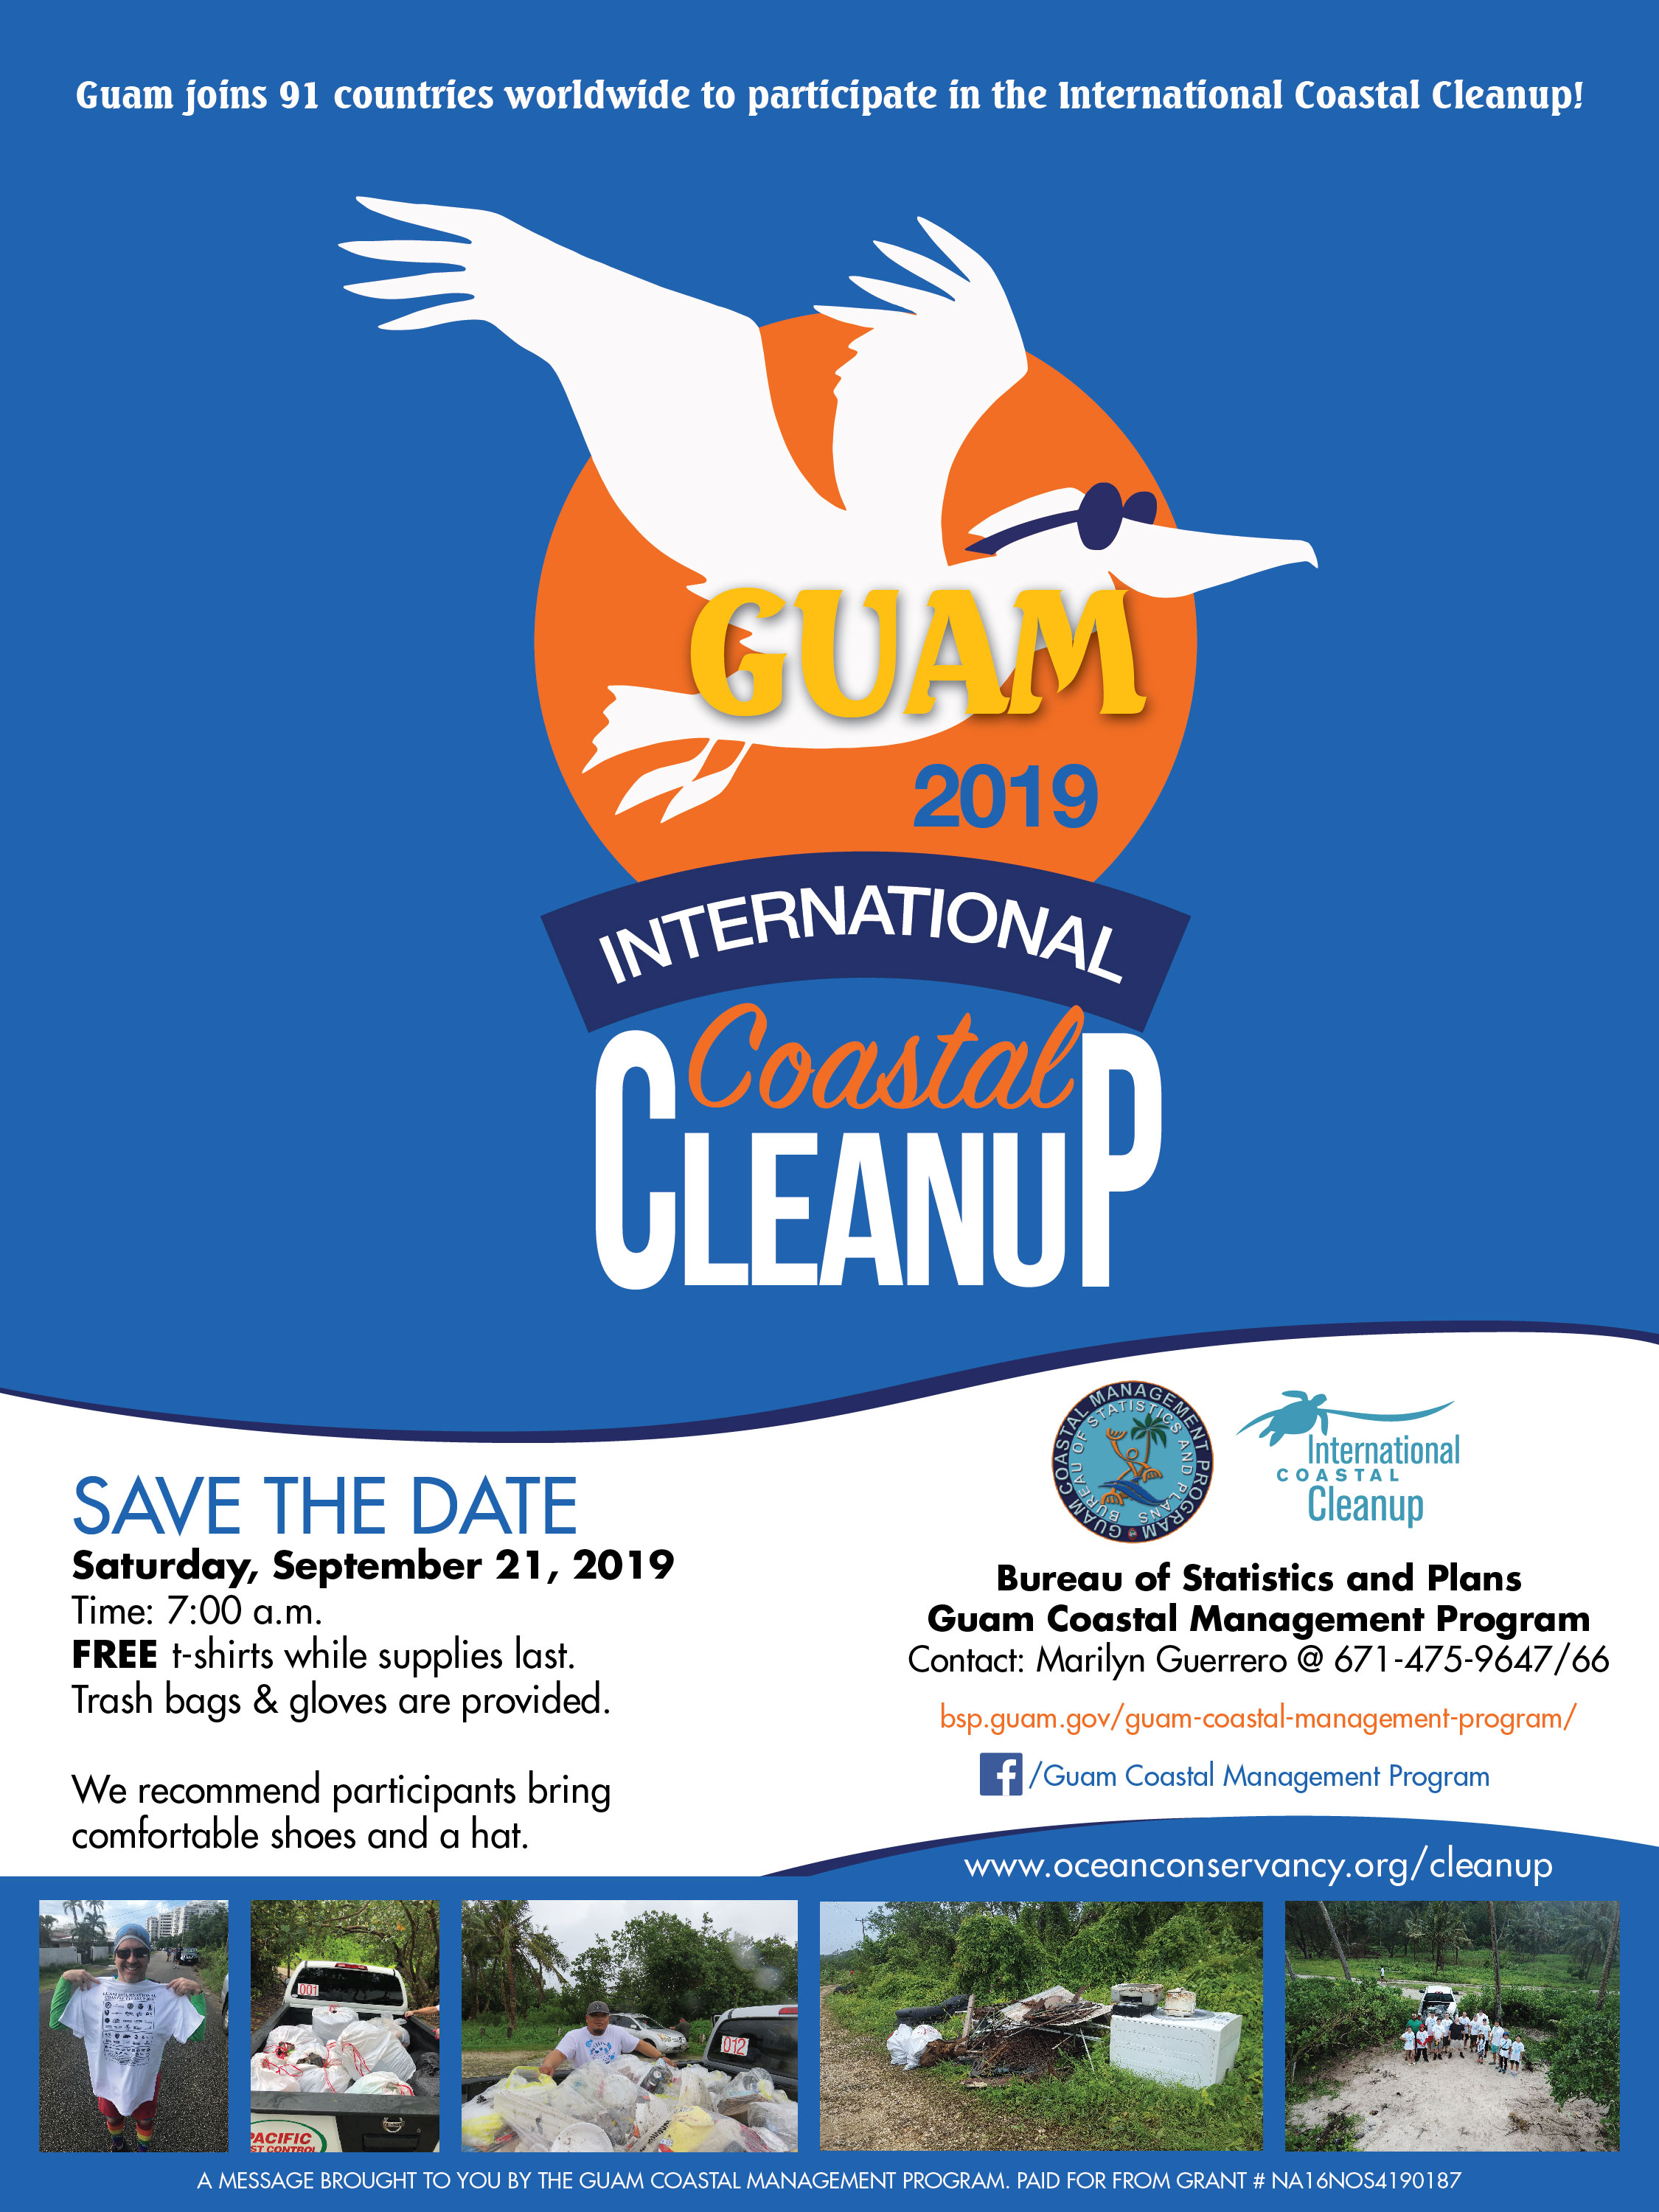 Guam 2019 International Coastal Cleanup